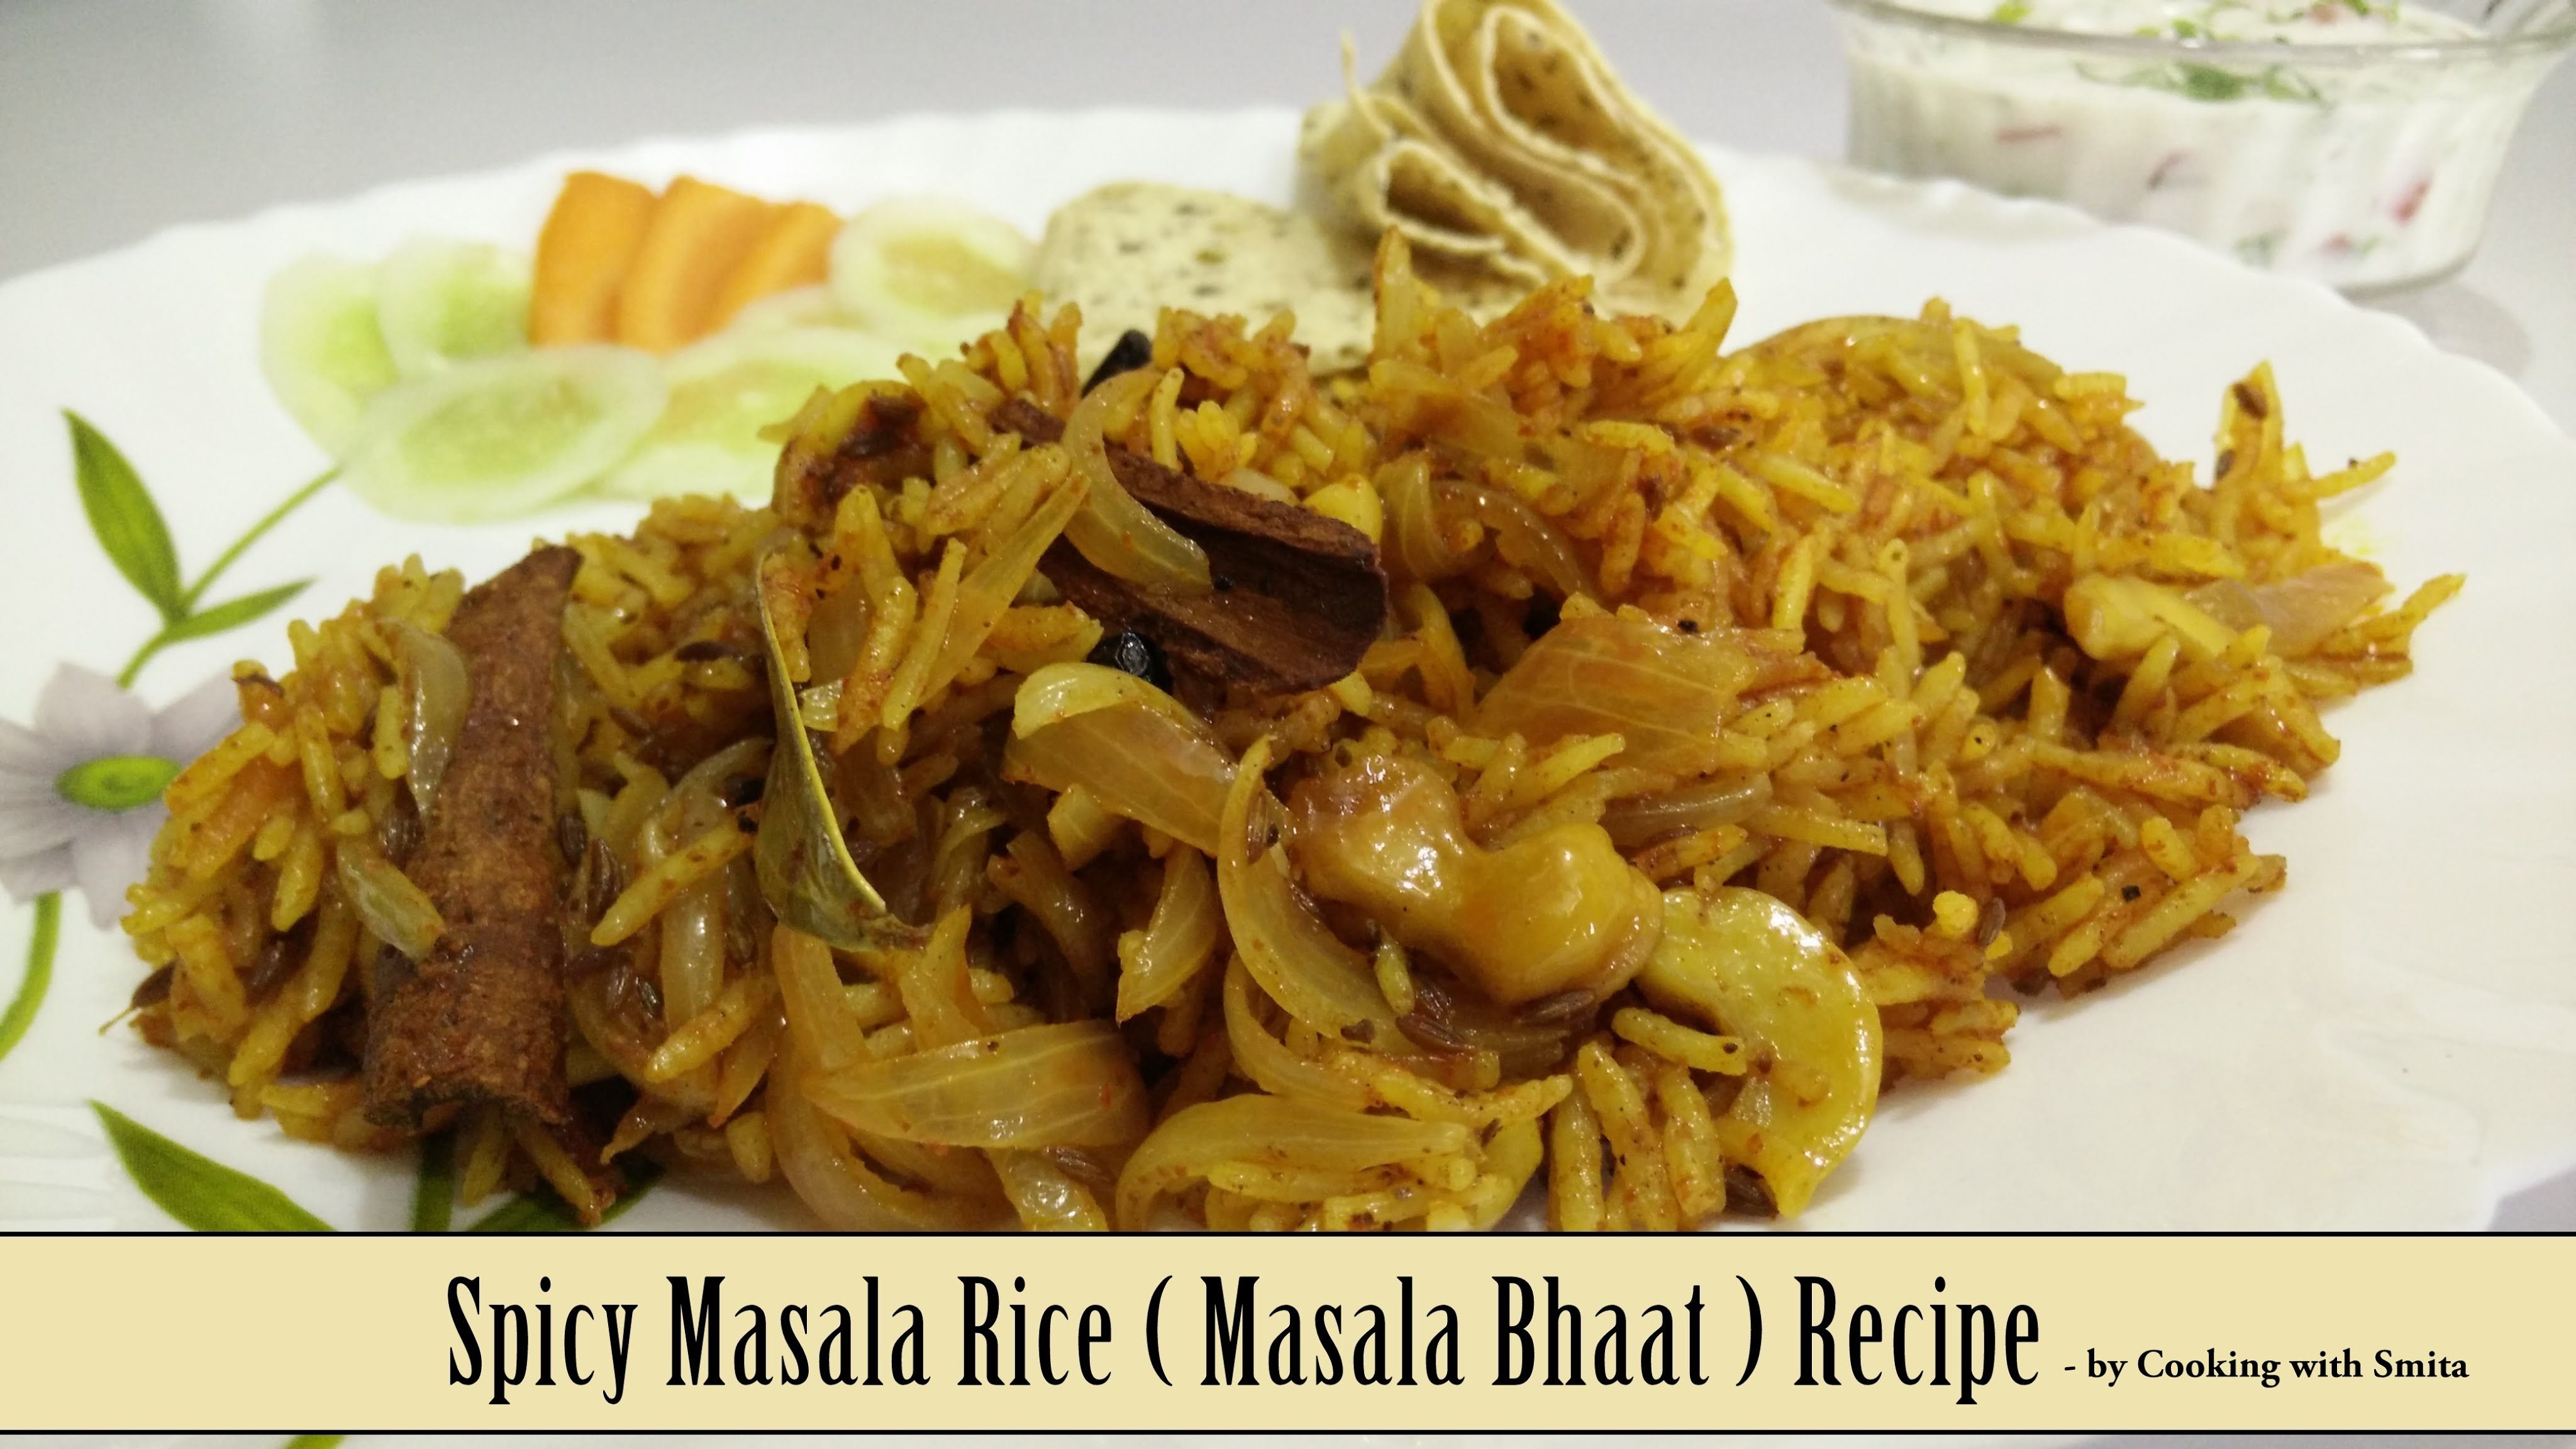 Spicy masala rice recipe in hindi by cooking with smita masala spicy masala rice recipe in hindi by cooking with smita masala bhaat forumfinder Gallery